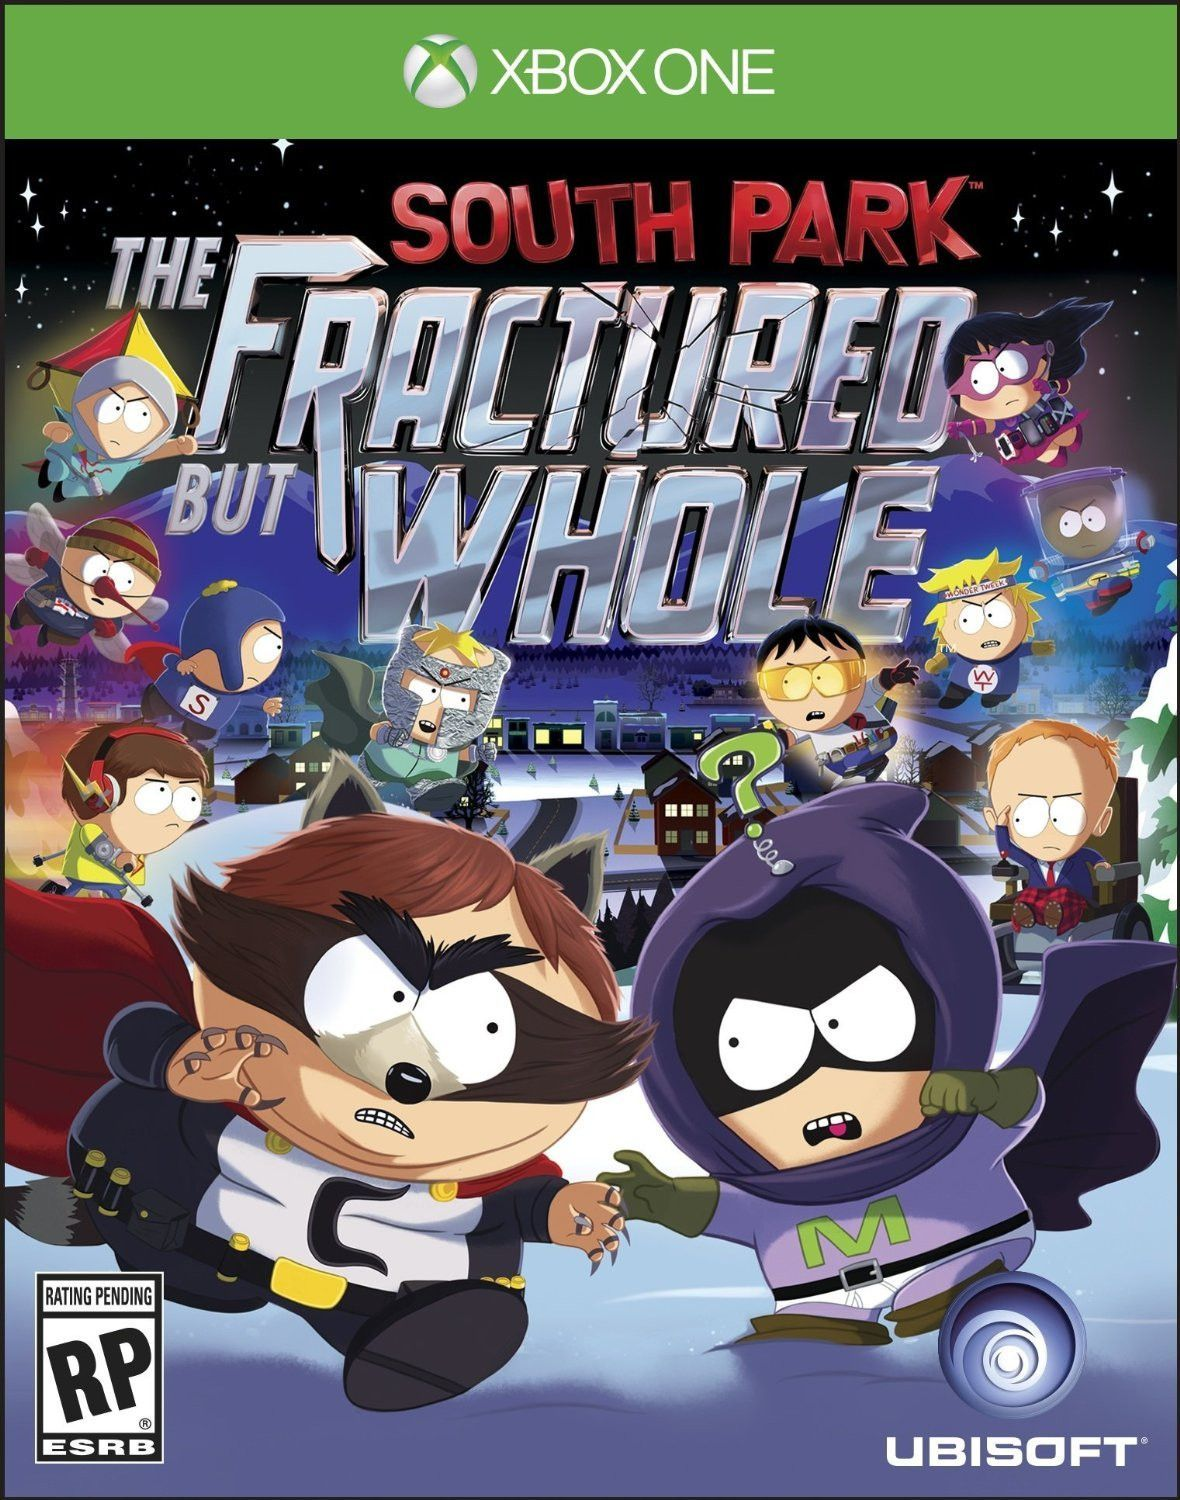 South Park The Fractured But Whole Pre-Order Xbox One Physical Game Disc US